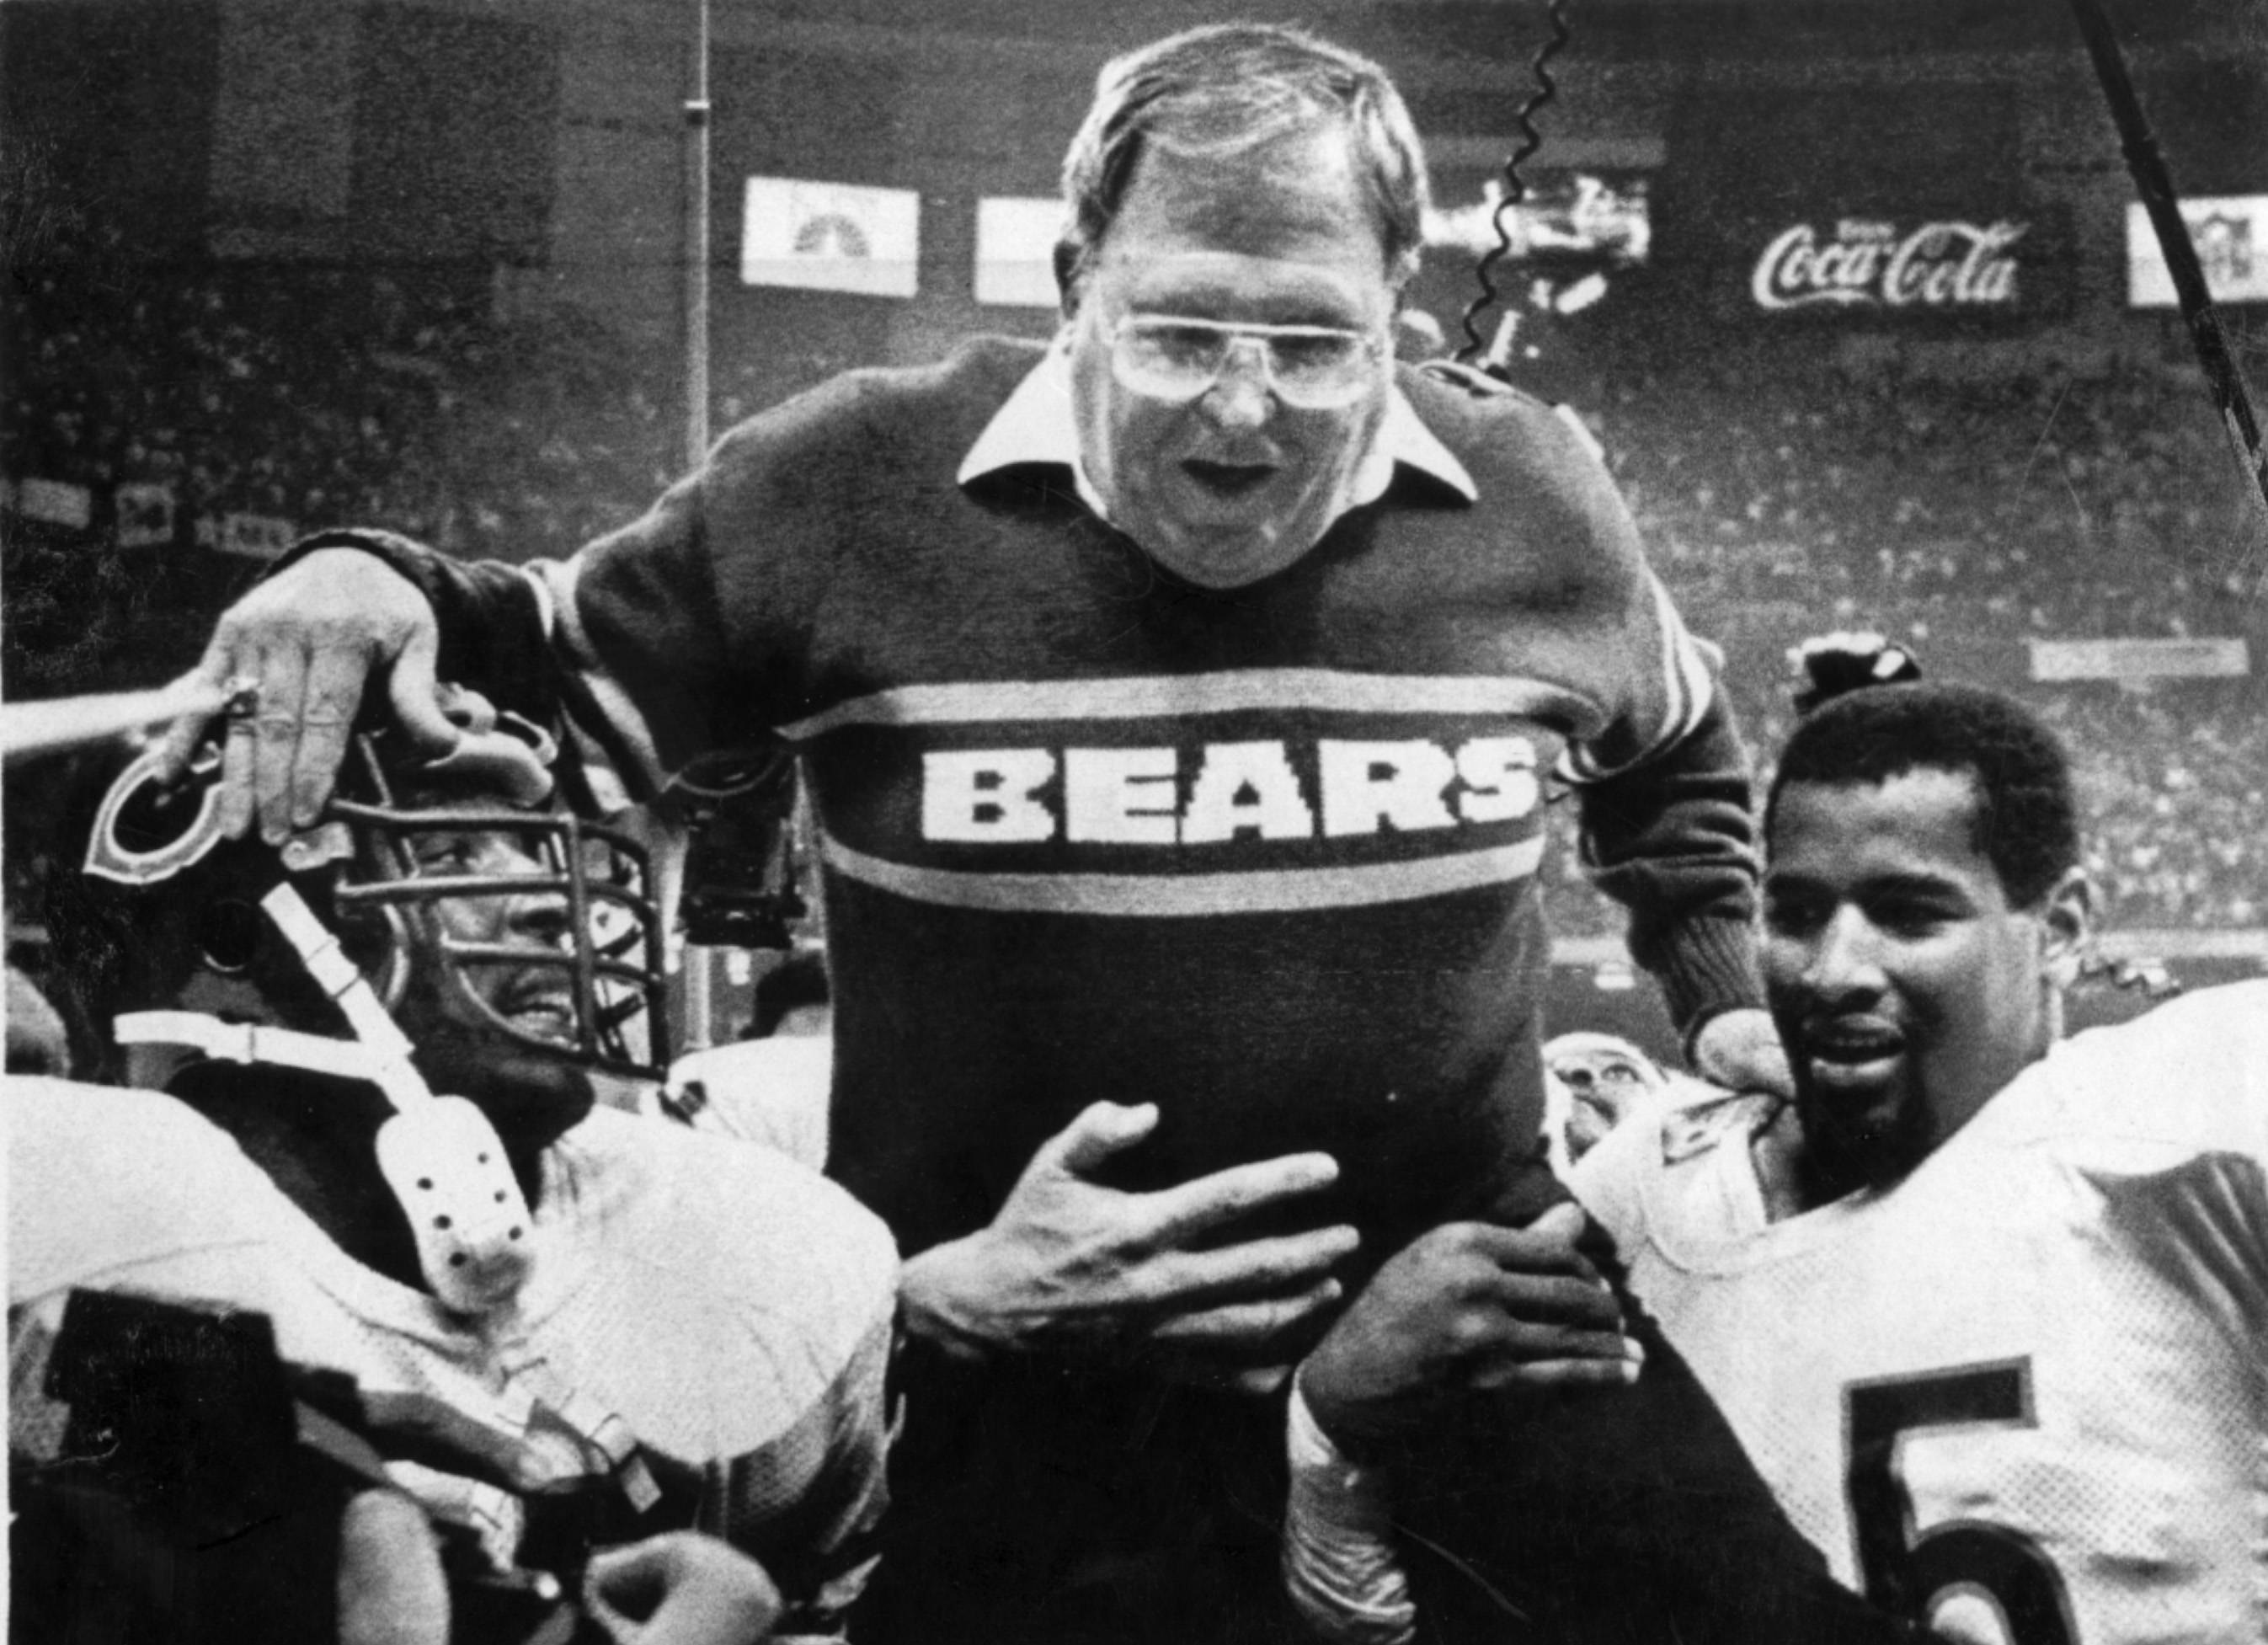 Buddy Ryan was the defensive coordinator for the Bears 1985 team.